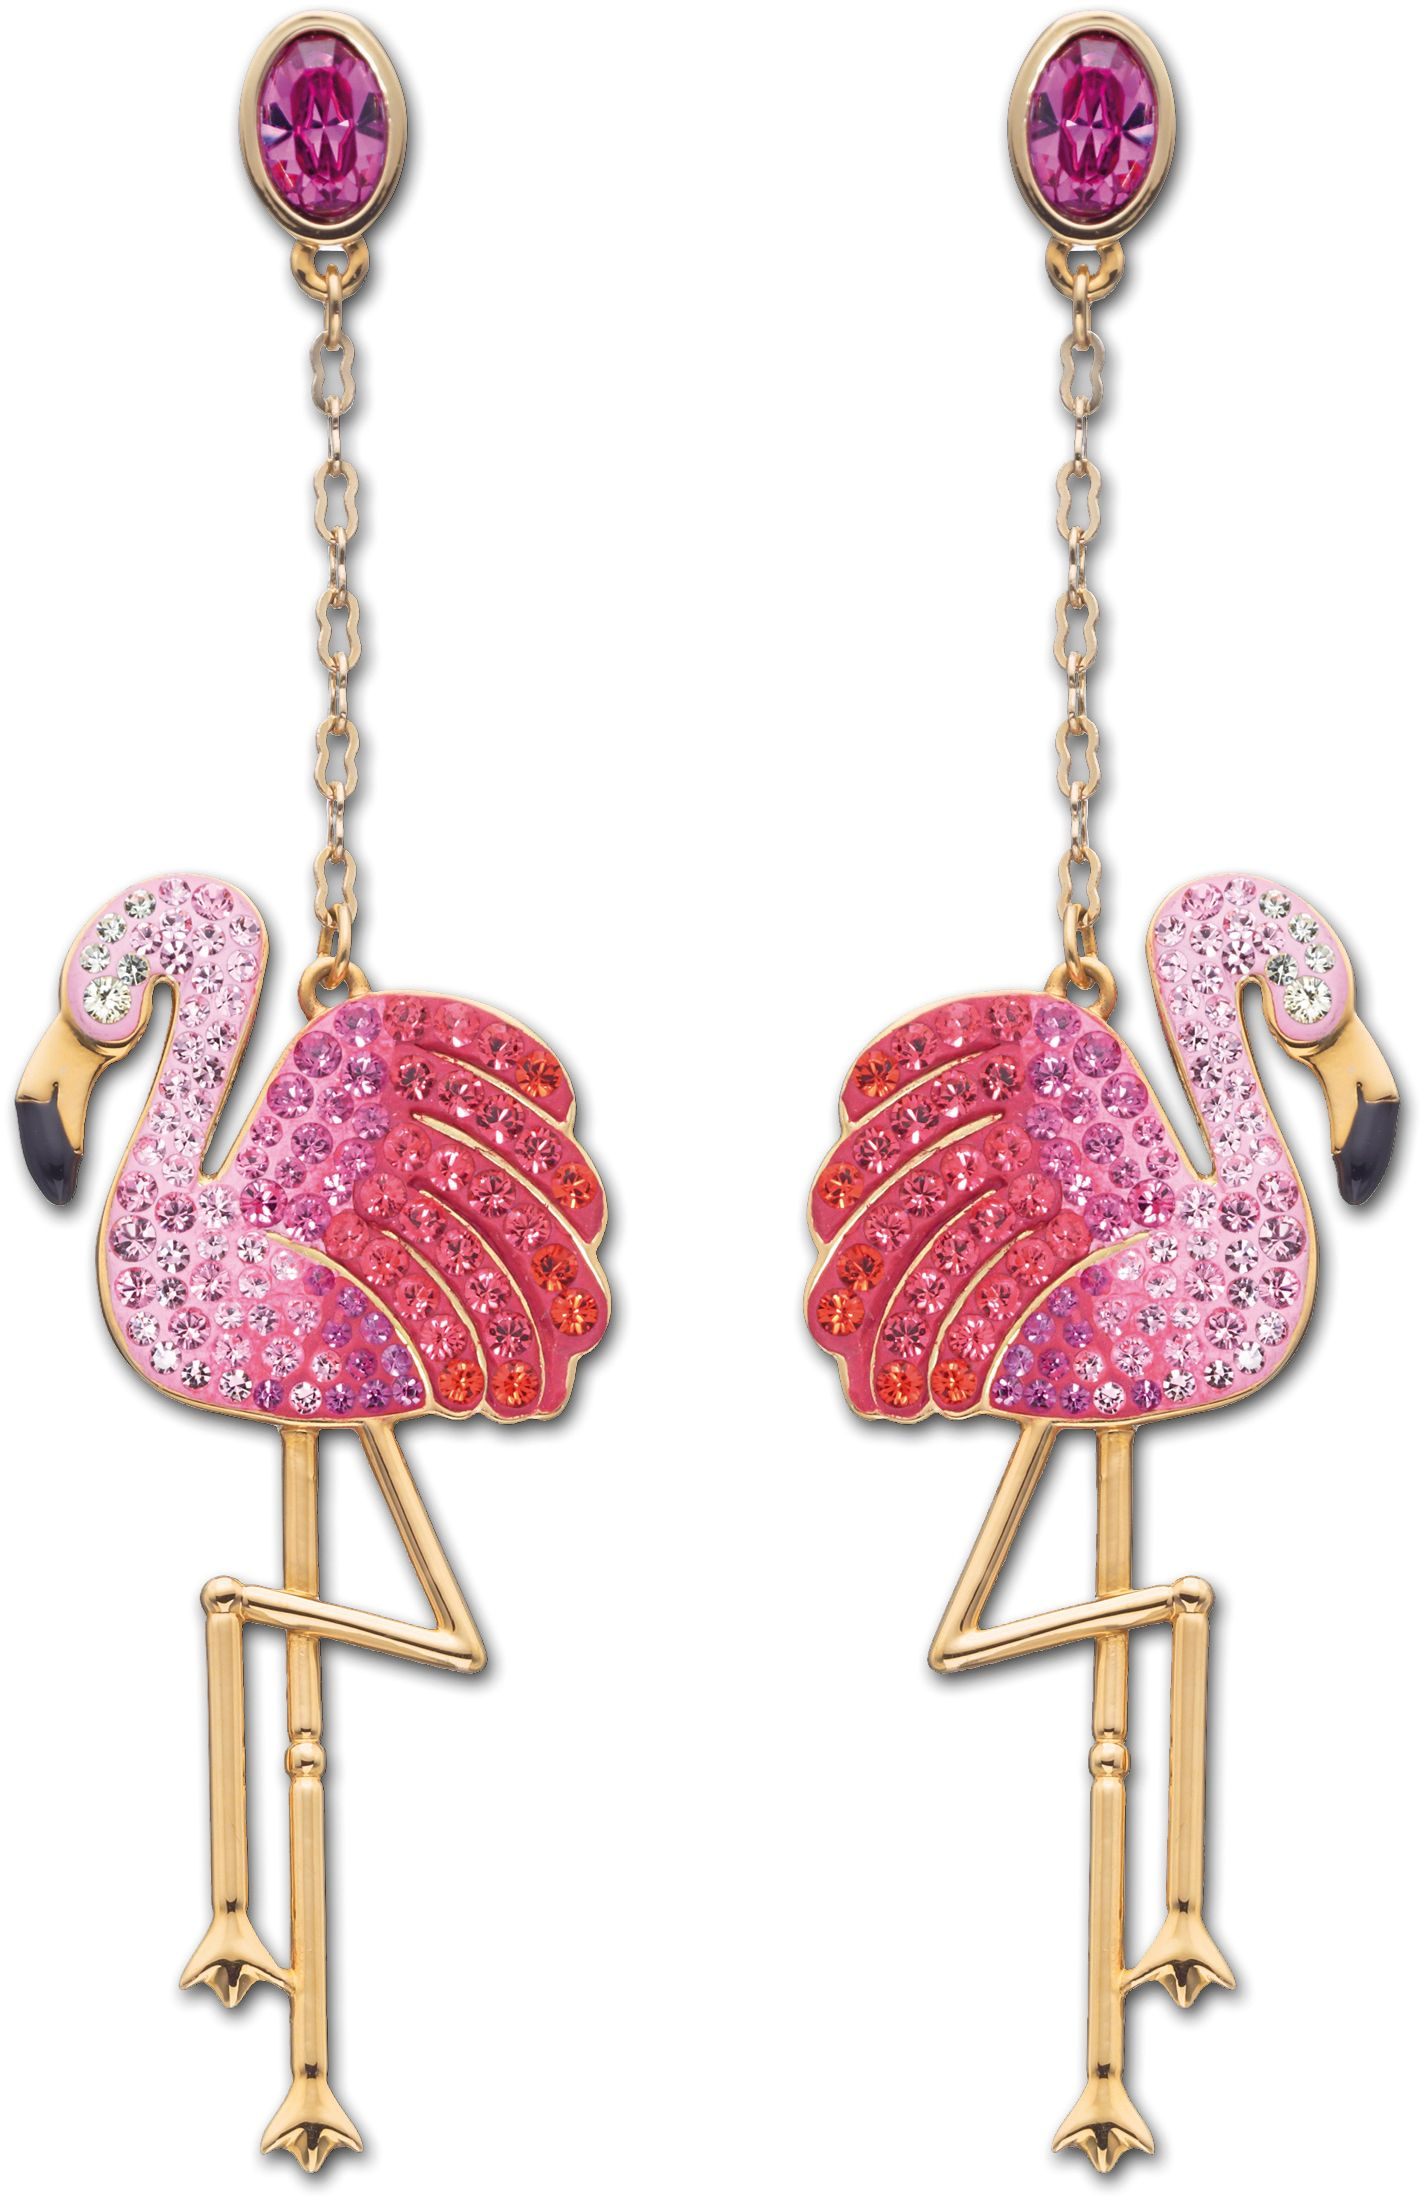 5f927df81 Pendants - Jewelry | pink flamingos | Flamingo, Jewelry trends, Bird ...